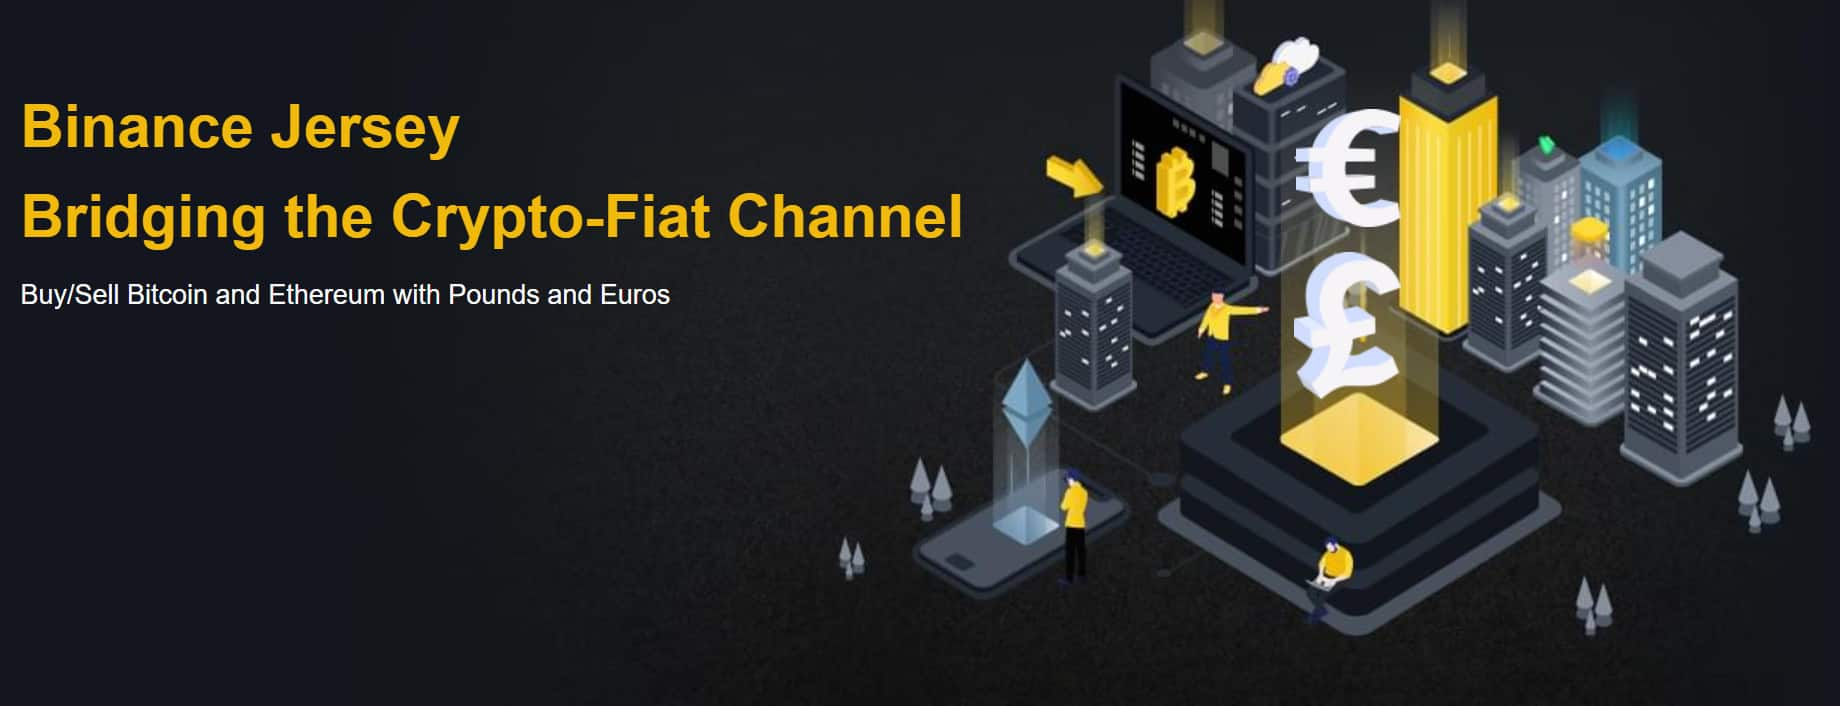 Binance Jersey Bridging the Crypto-Fiat Channel - Source:www.binance.je